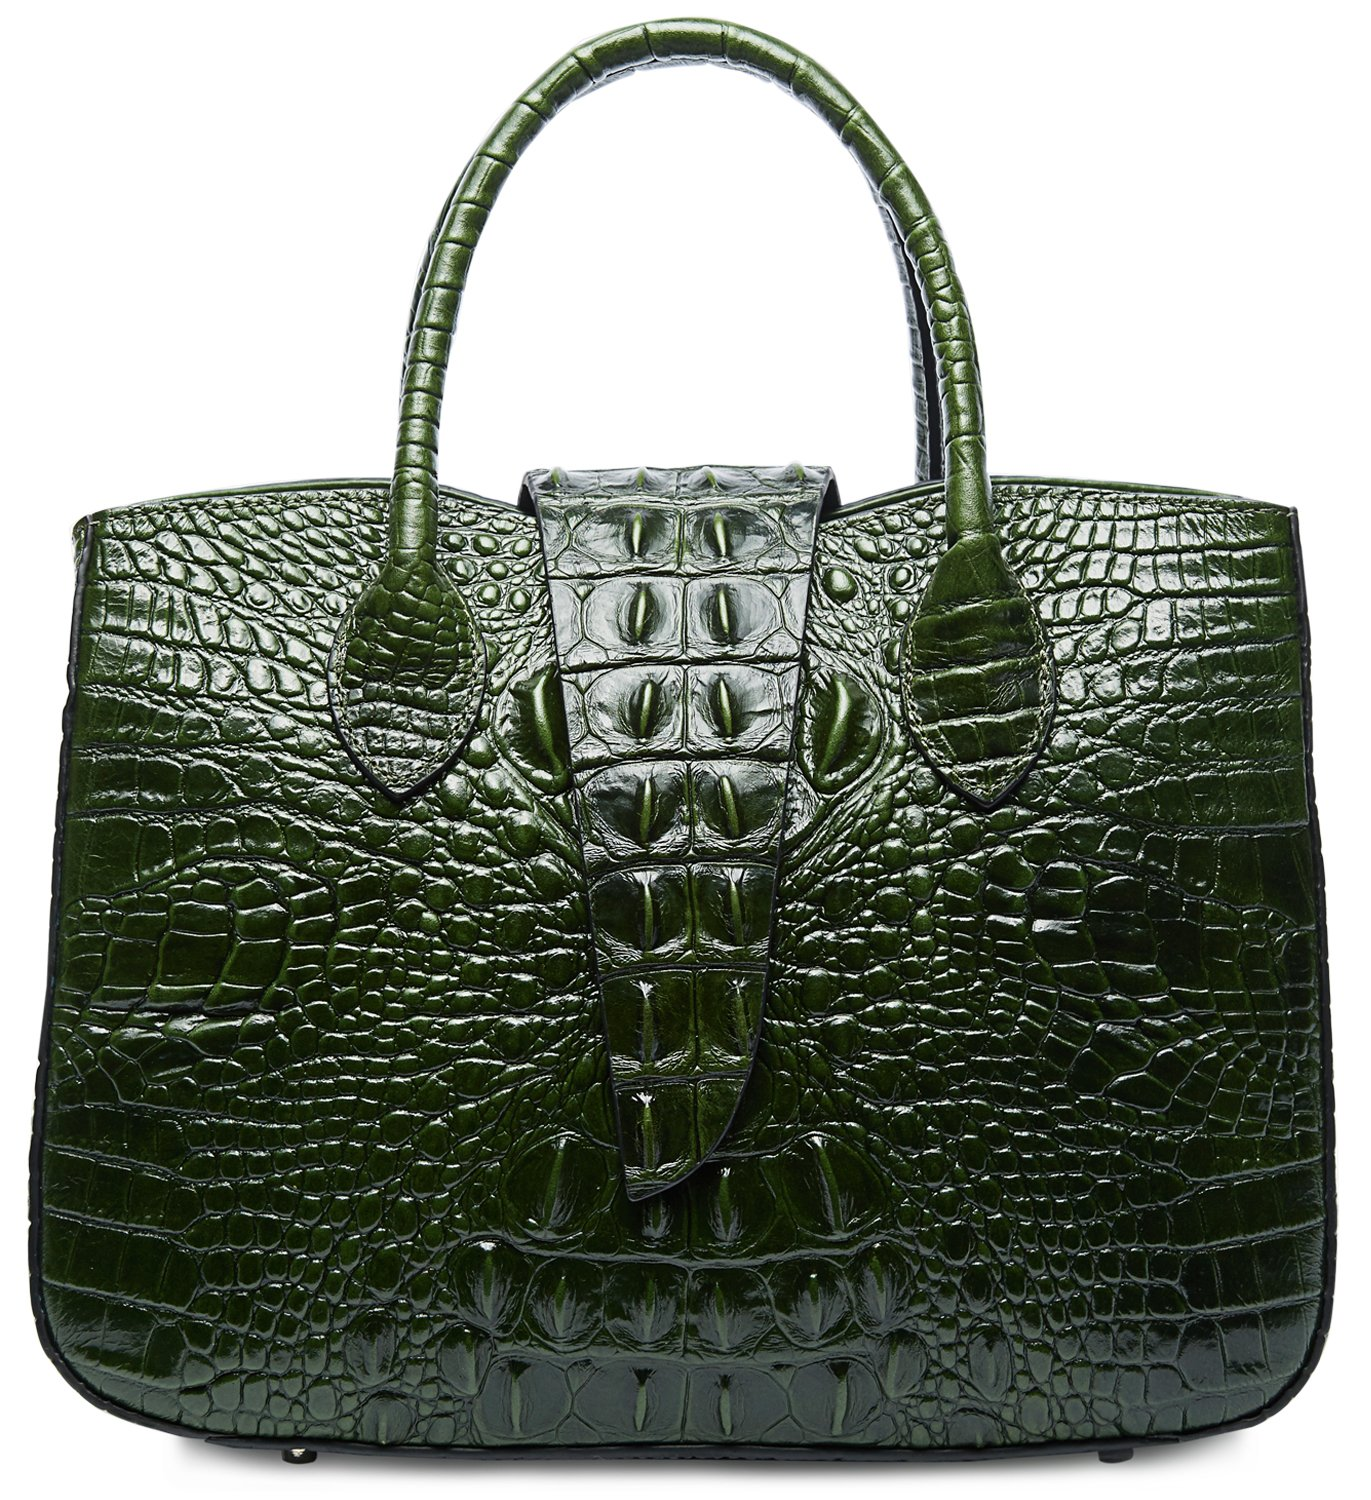 PIFUREN Designer Crocodile Handbags Women Top Handle Satchel Shoulder Bags M1110 (One Size, Green) by PIFUREN